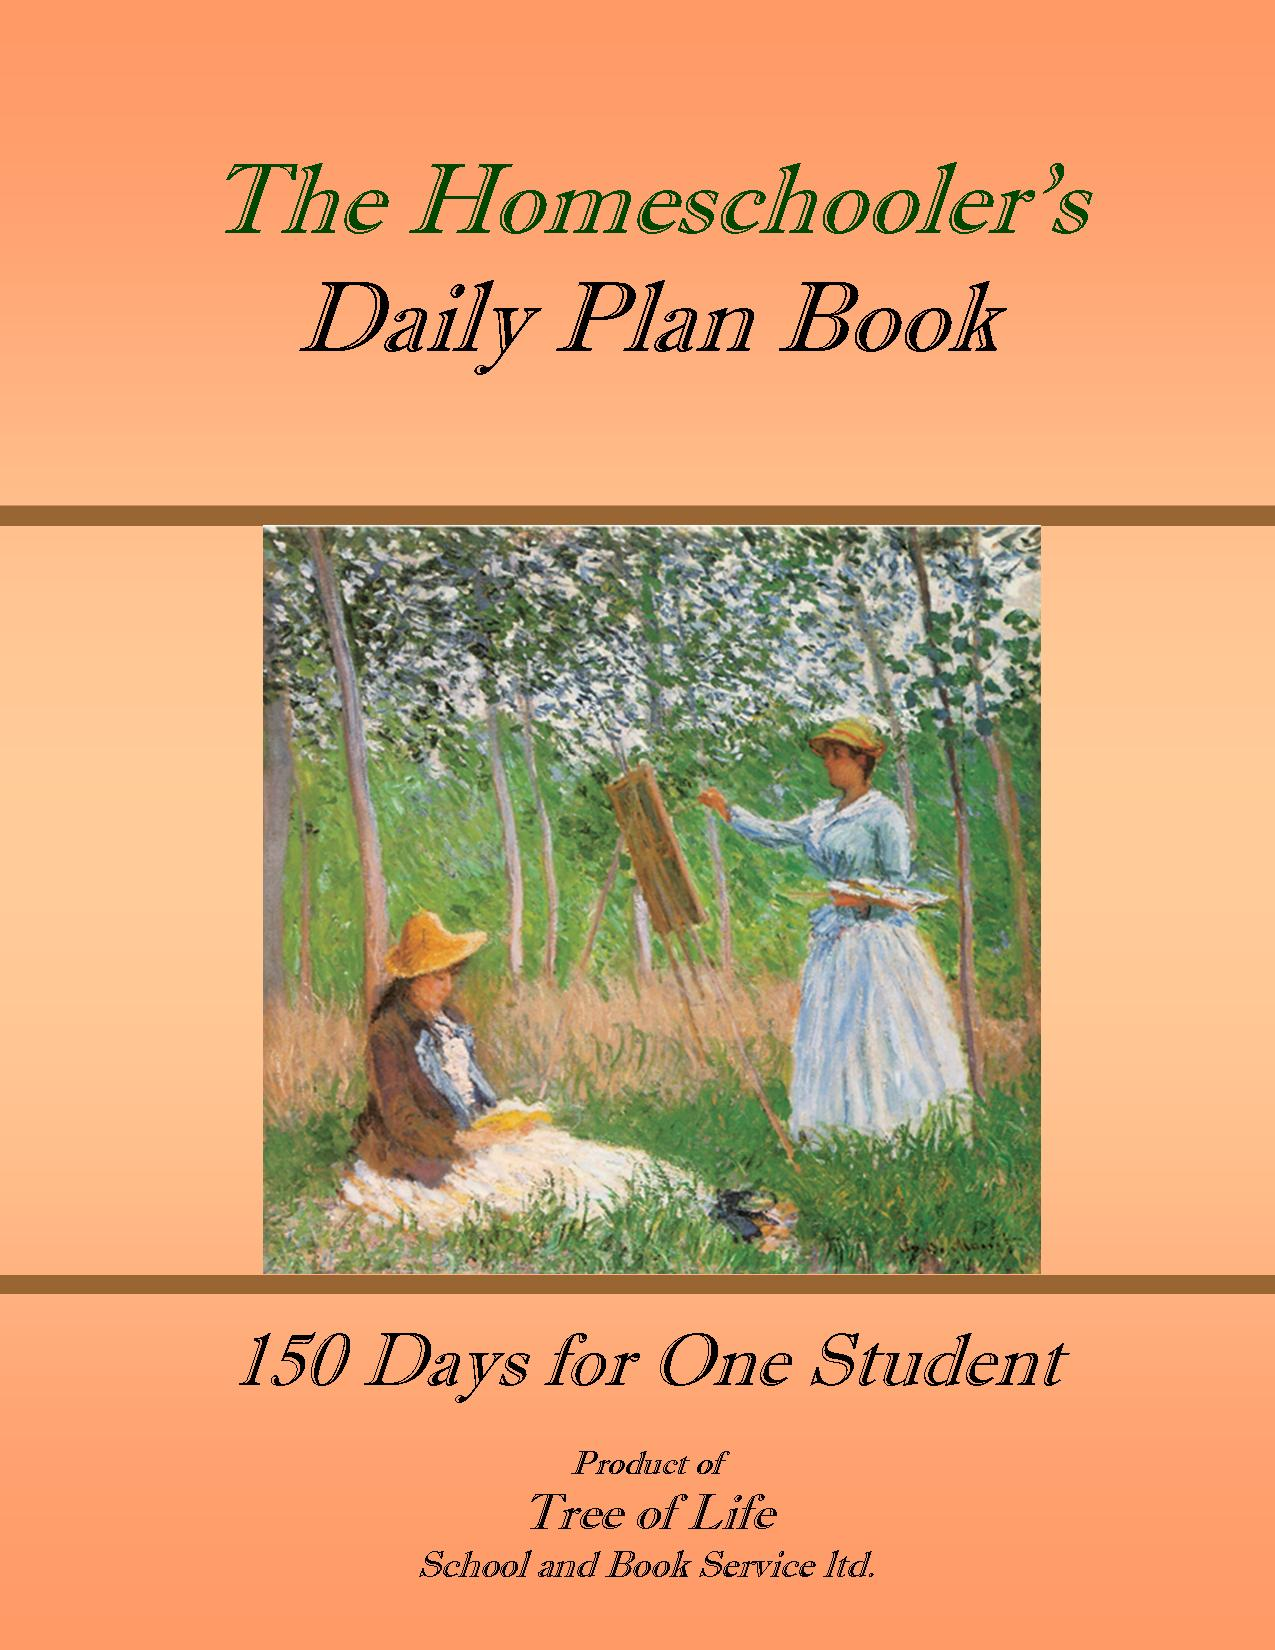 Homeschooler's Daily Plan Books